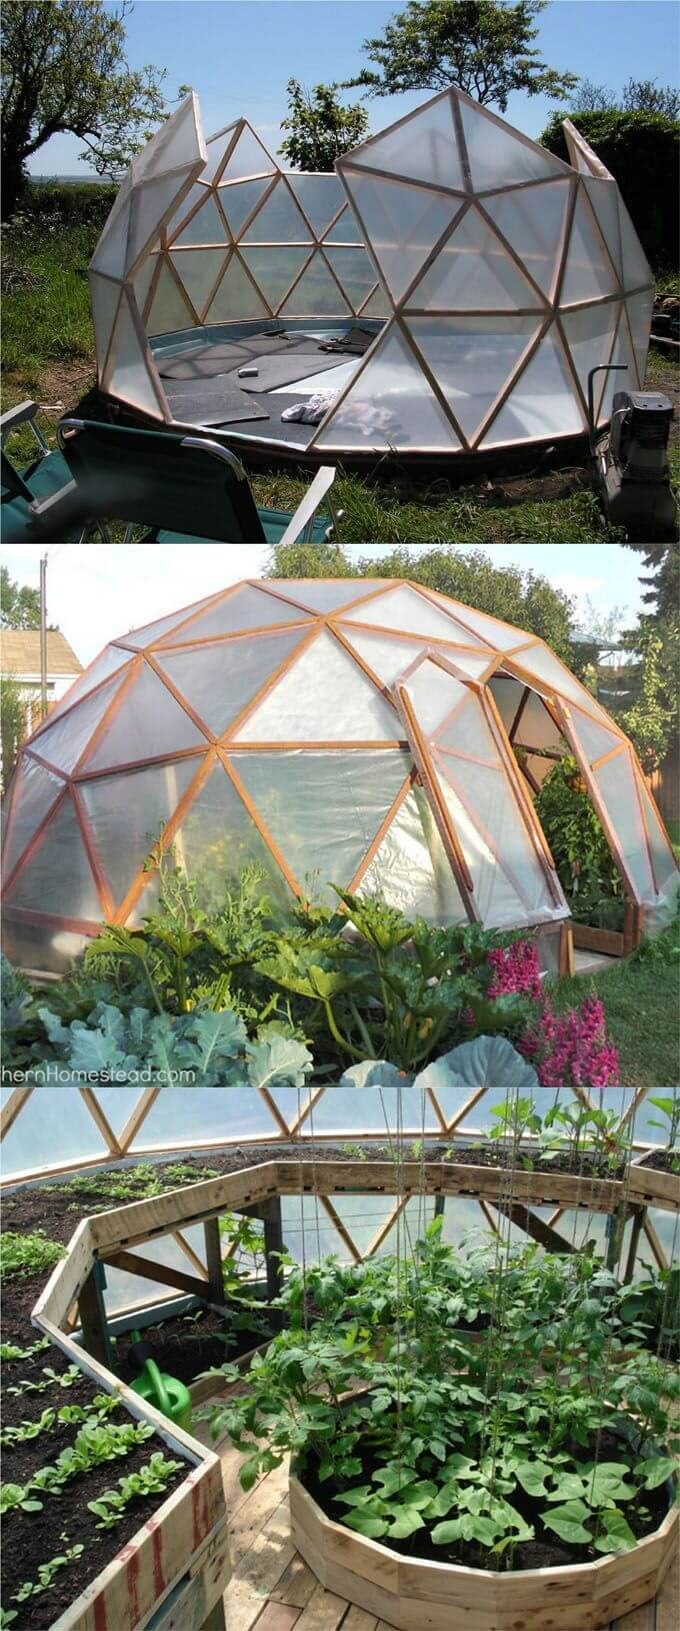 An Igloo-Inspired Walk-in Garden Green House